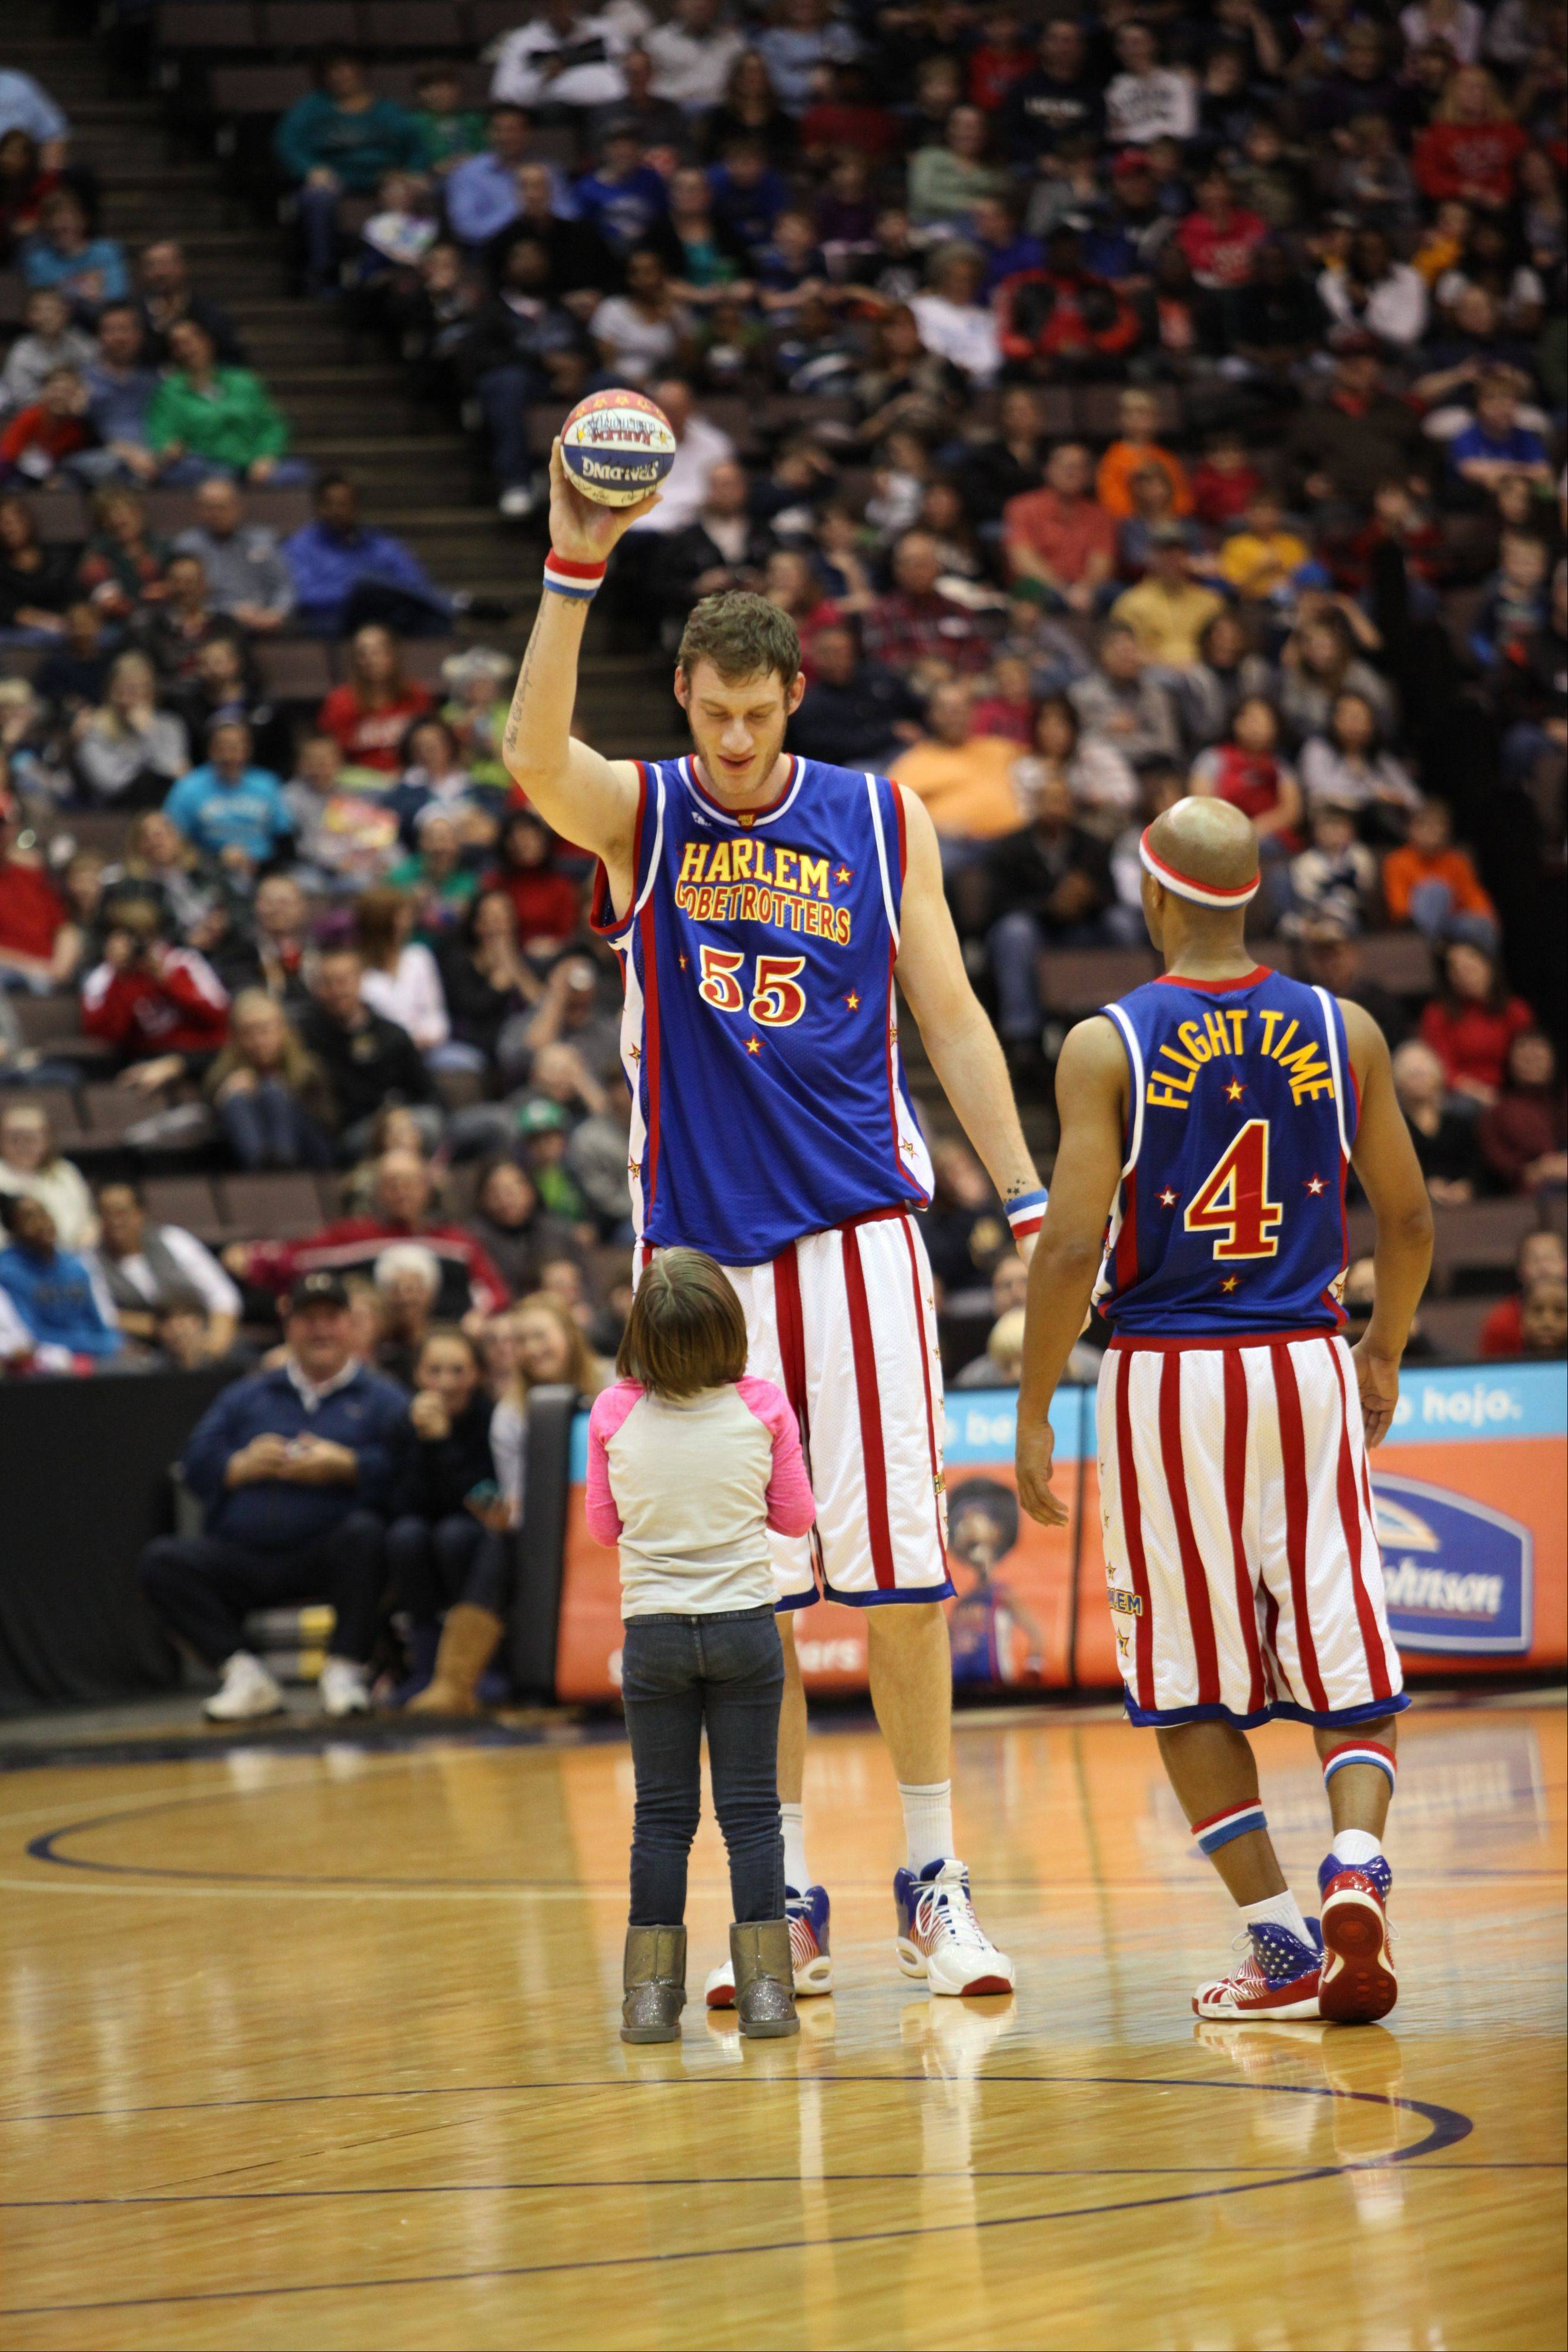 See Tiny Sturgess, Flight Time Lang and the rest of the Harlem Globetrotters clown around at the Allstate Arena in Rosemont during two games on Friday, Dec. 28.